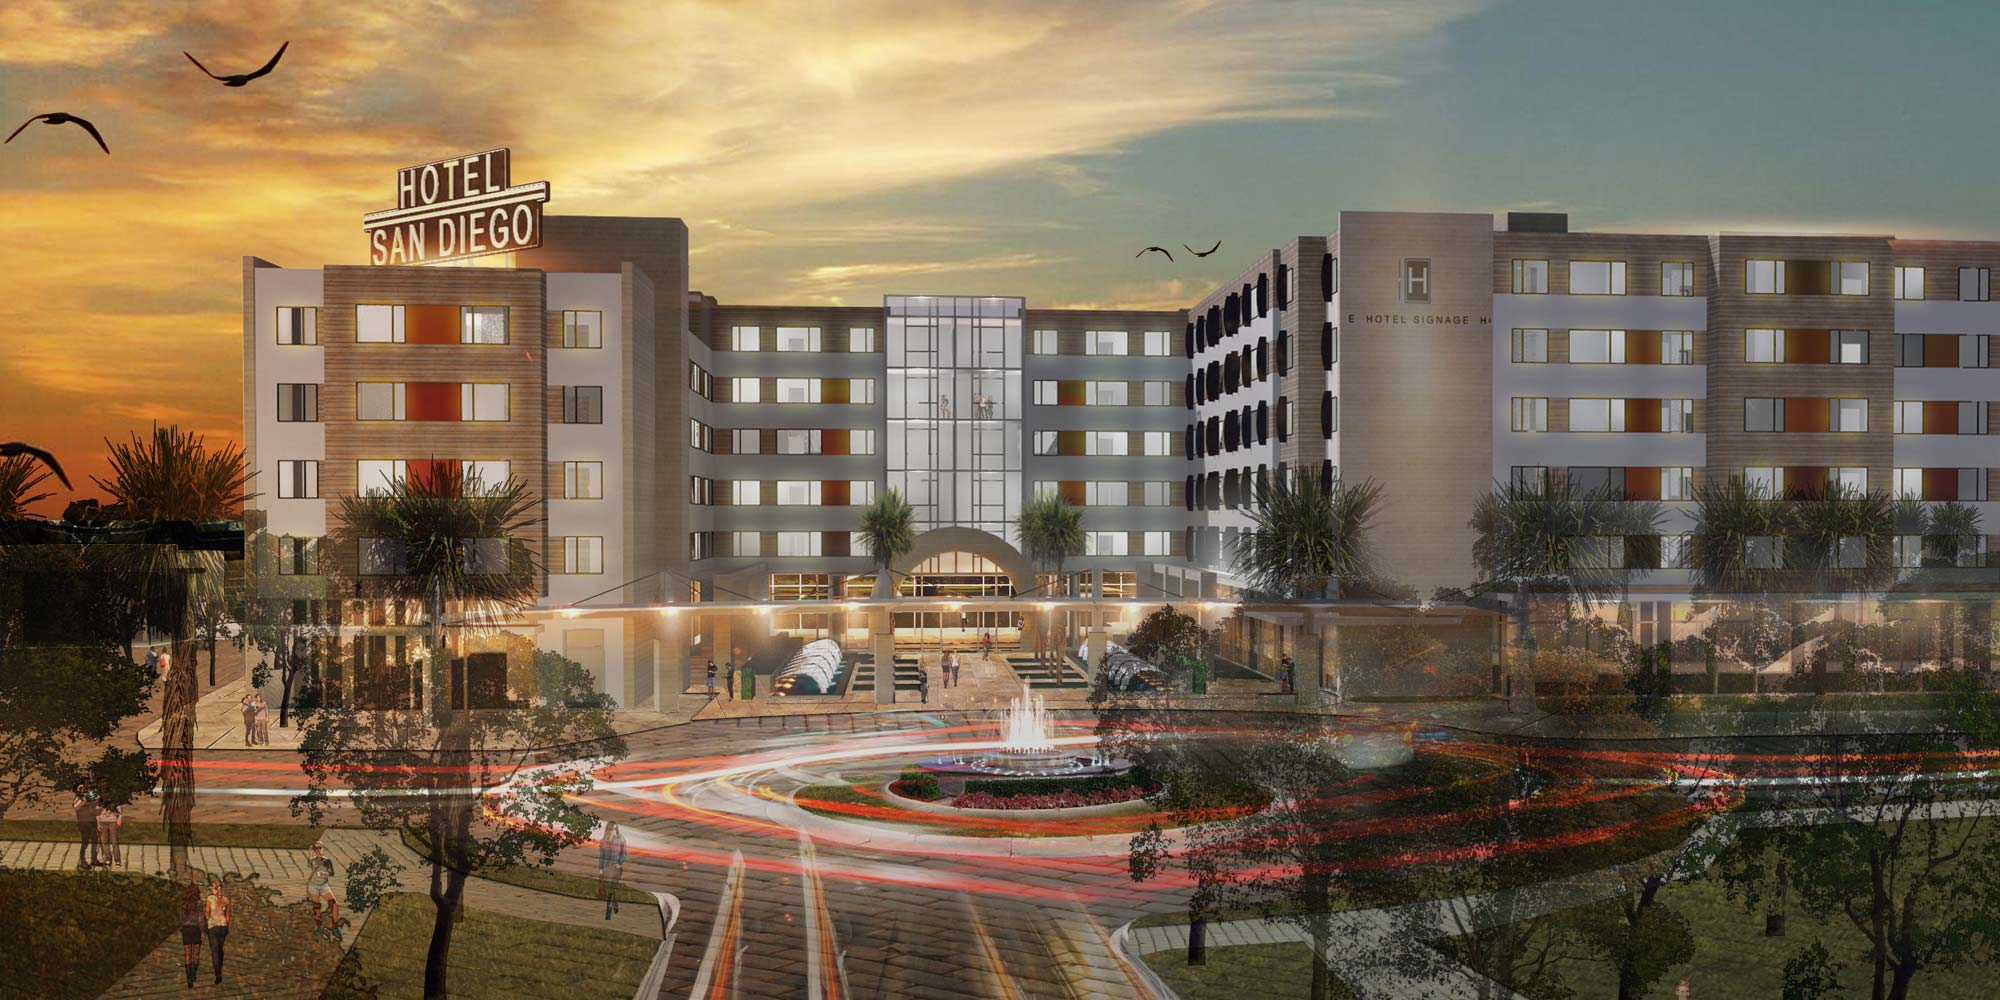 Liberty Station Hotel San Diego - architectural rendering